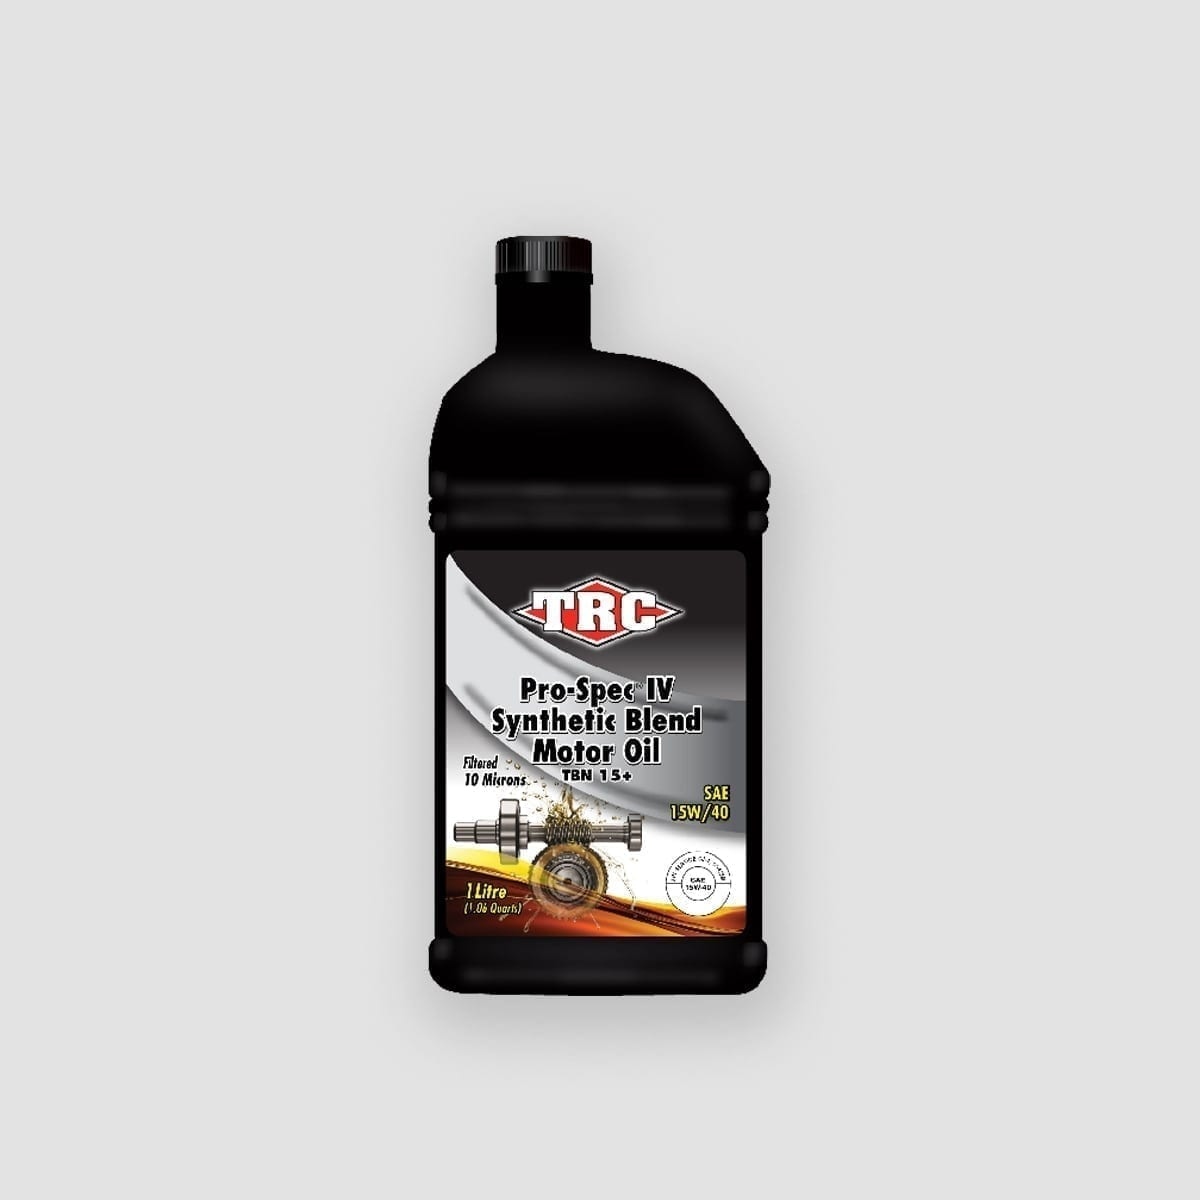 pro-spec-iv-synthetic-blend-motor-oil 15w/40-01-french